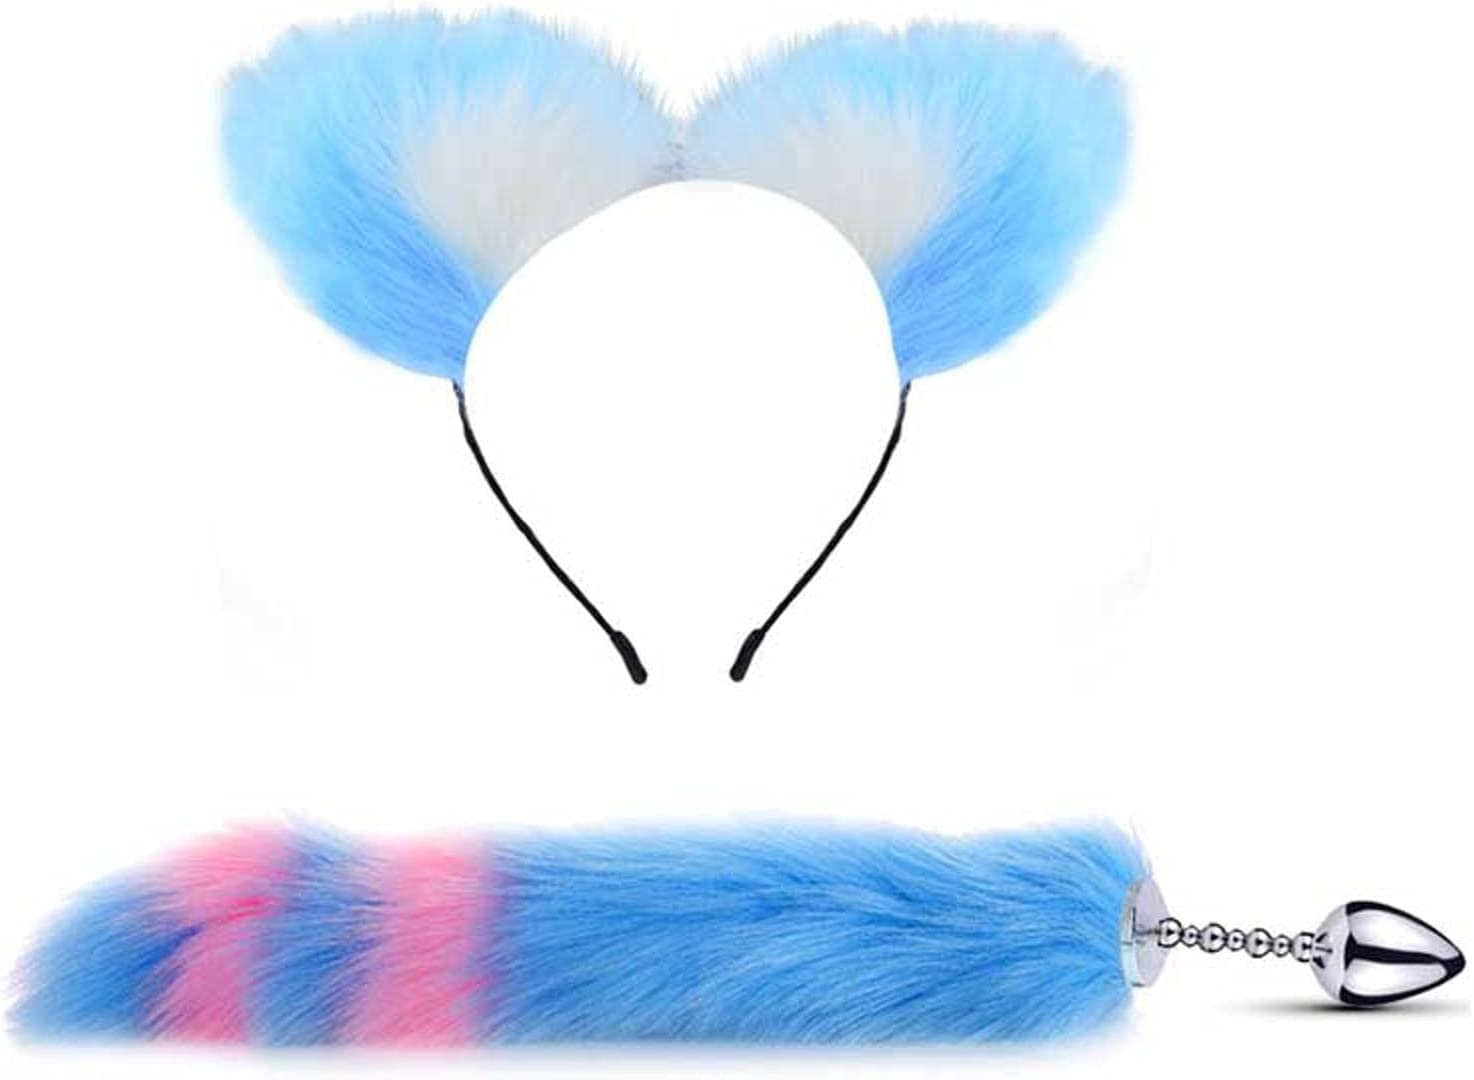 N\C Tail Plug Earplugs Year-end annual account 3 Soft Ear Headbands Met Foxtail with 5% OFF Cat